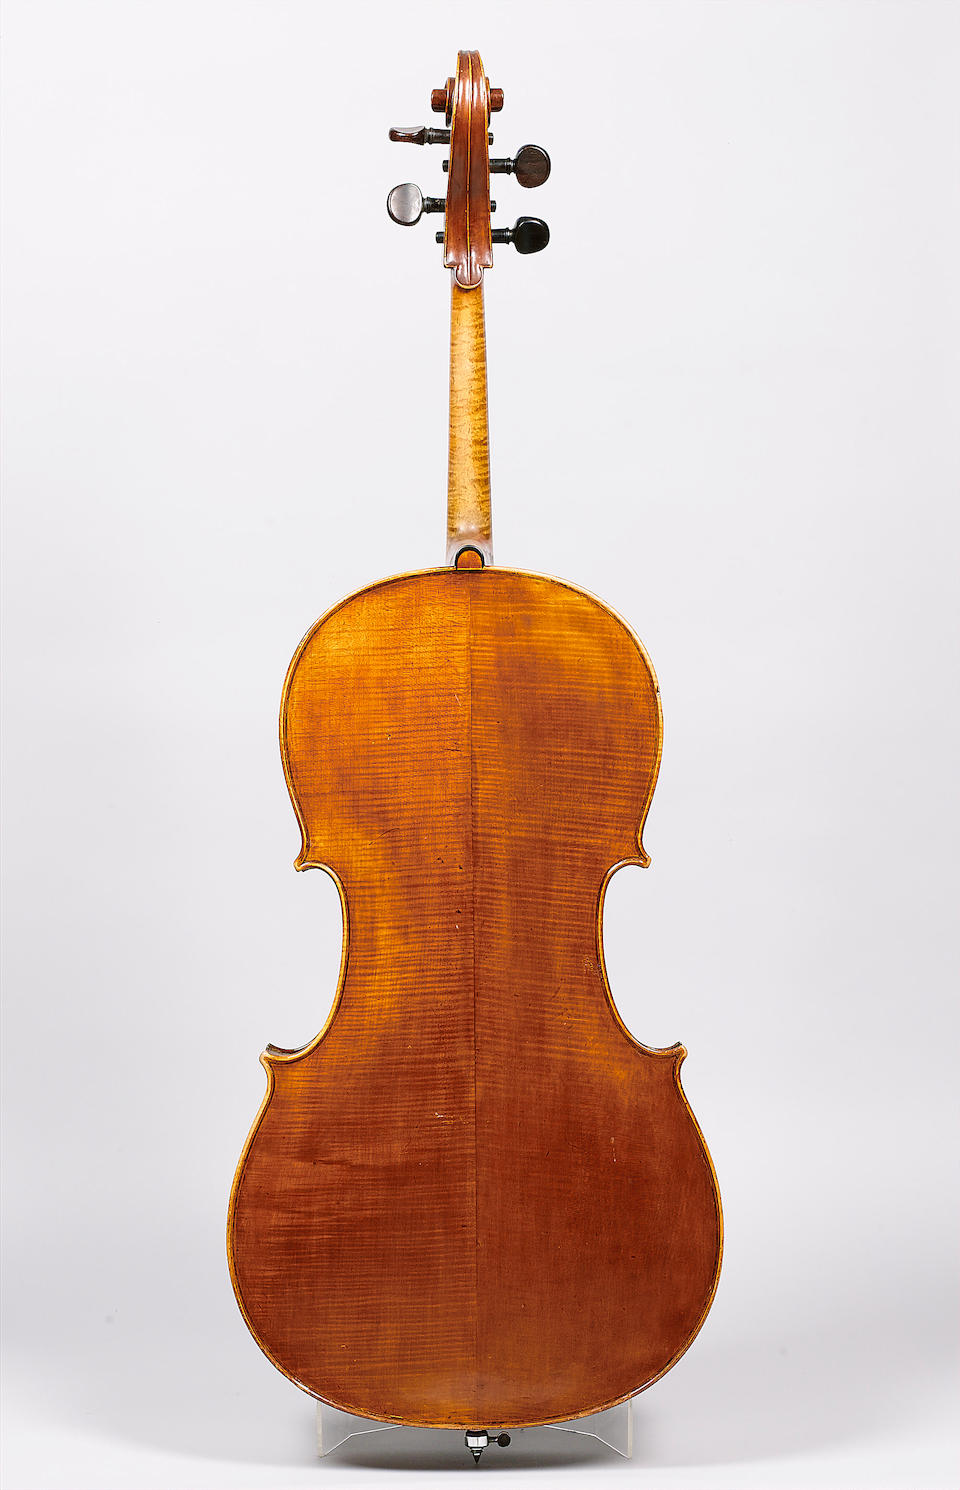 A fine and handsome English Violoncello by Thomas Kennedy Maker, London circa 1820